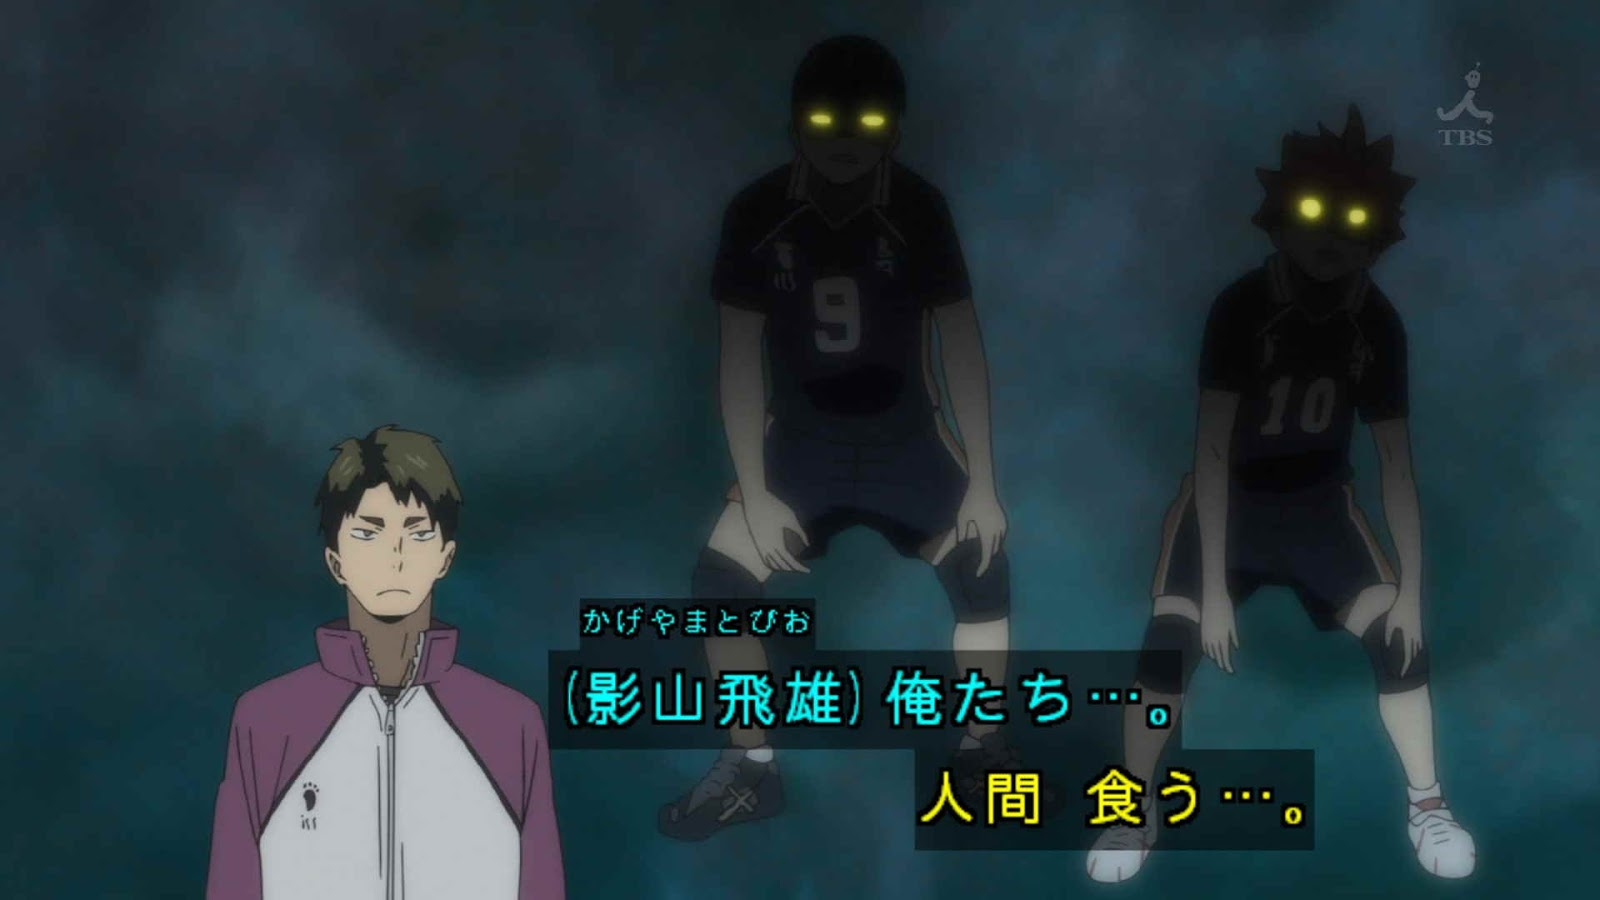 Haikyuu!! Season 4 - Episode 3